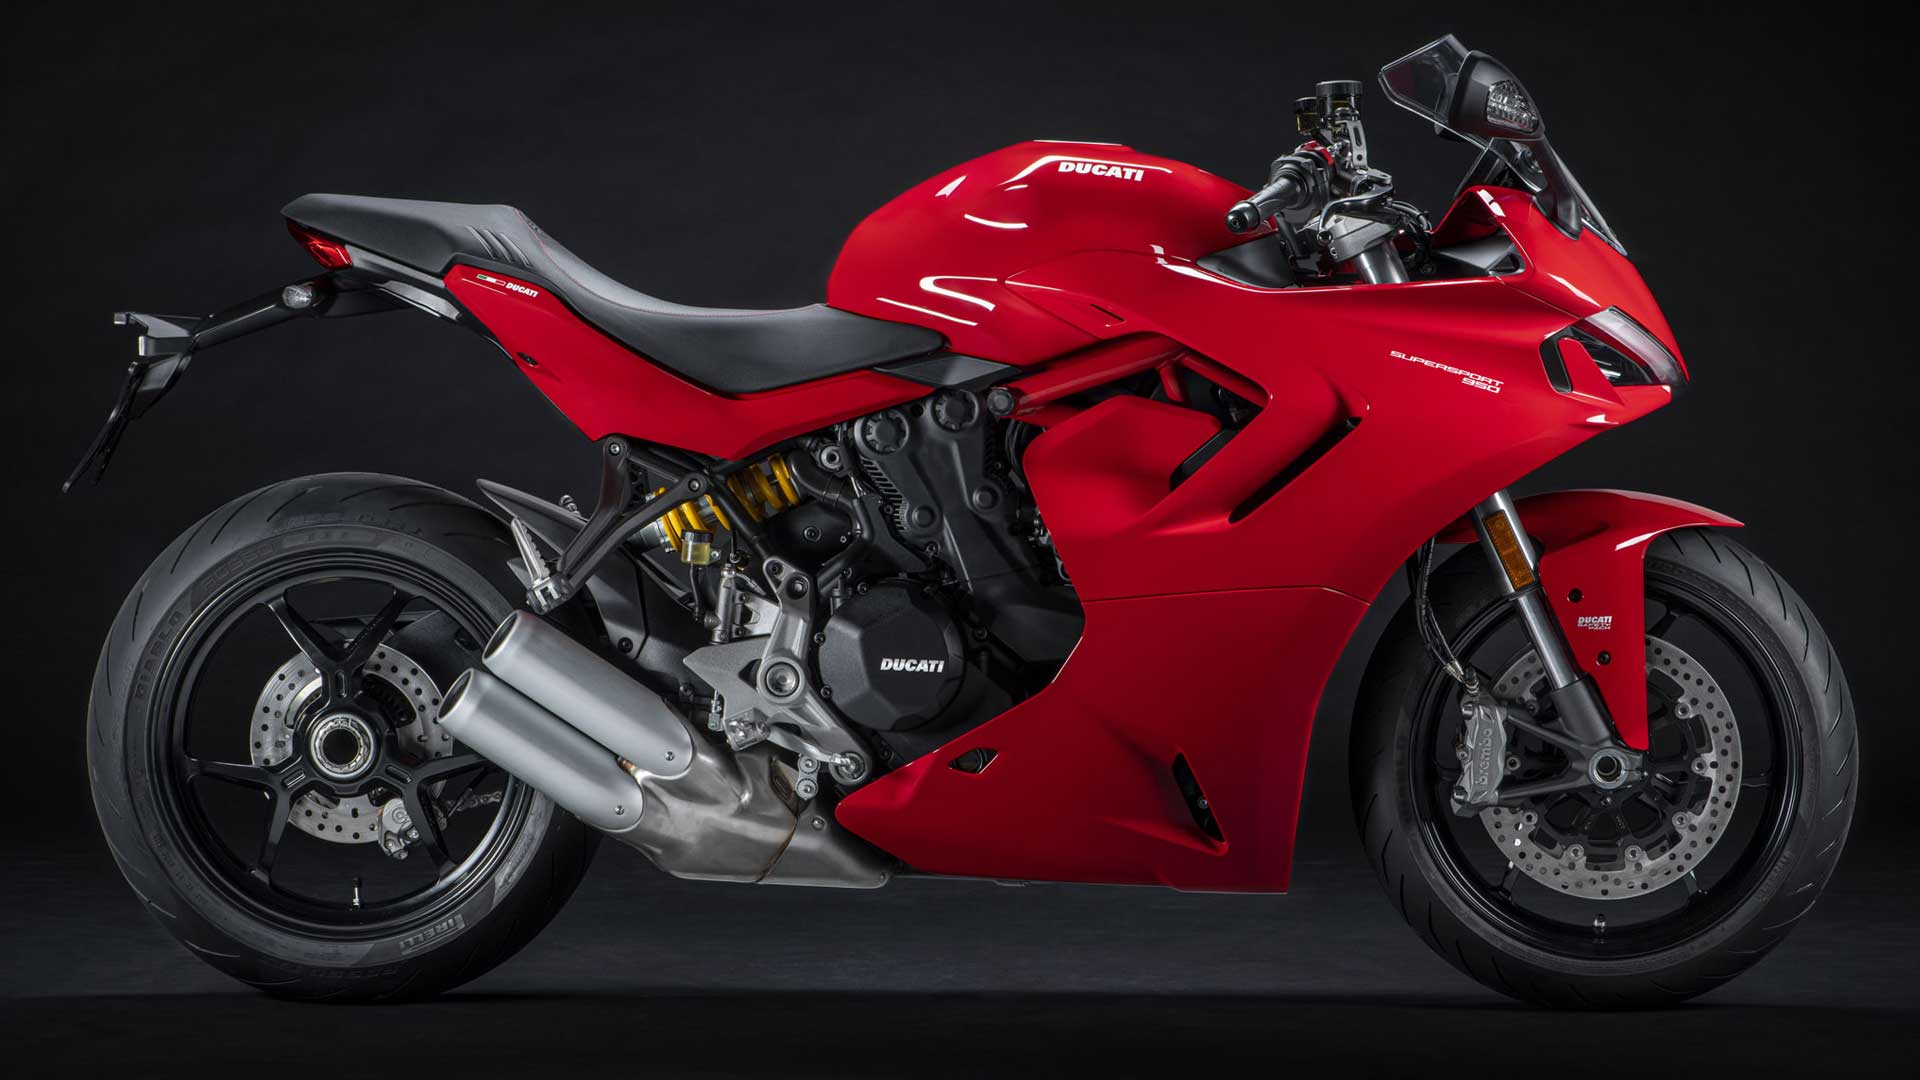 2021 Ducati SuperSport 950 for sale at Ducati Preston, Lancashire, Scotland